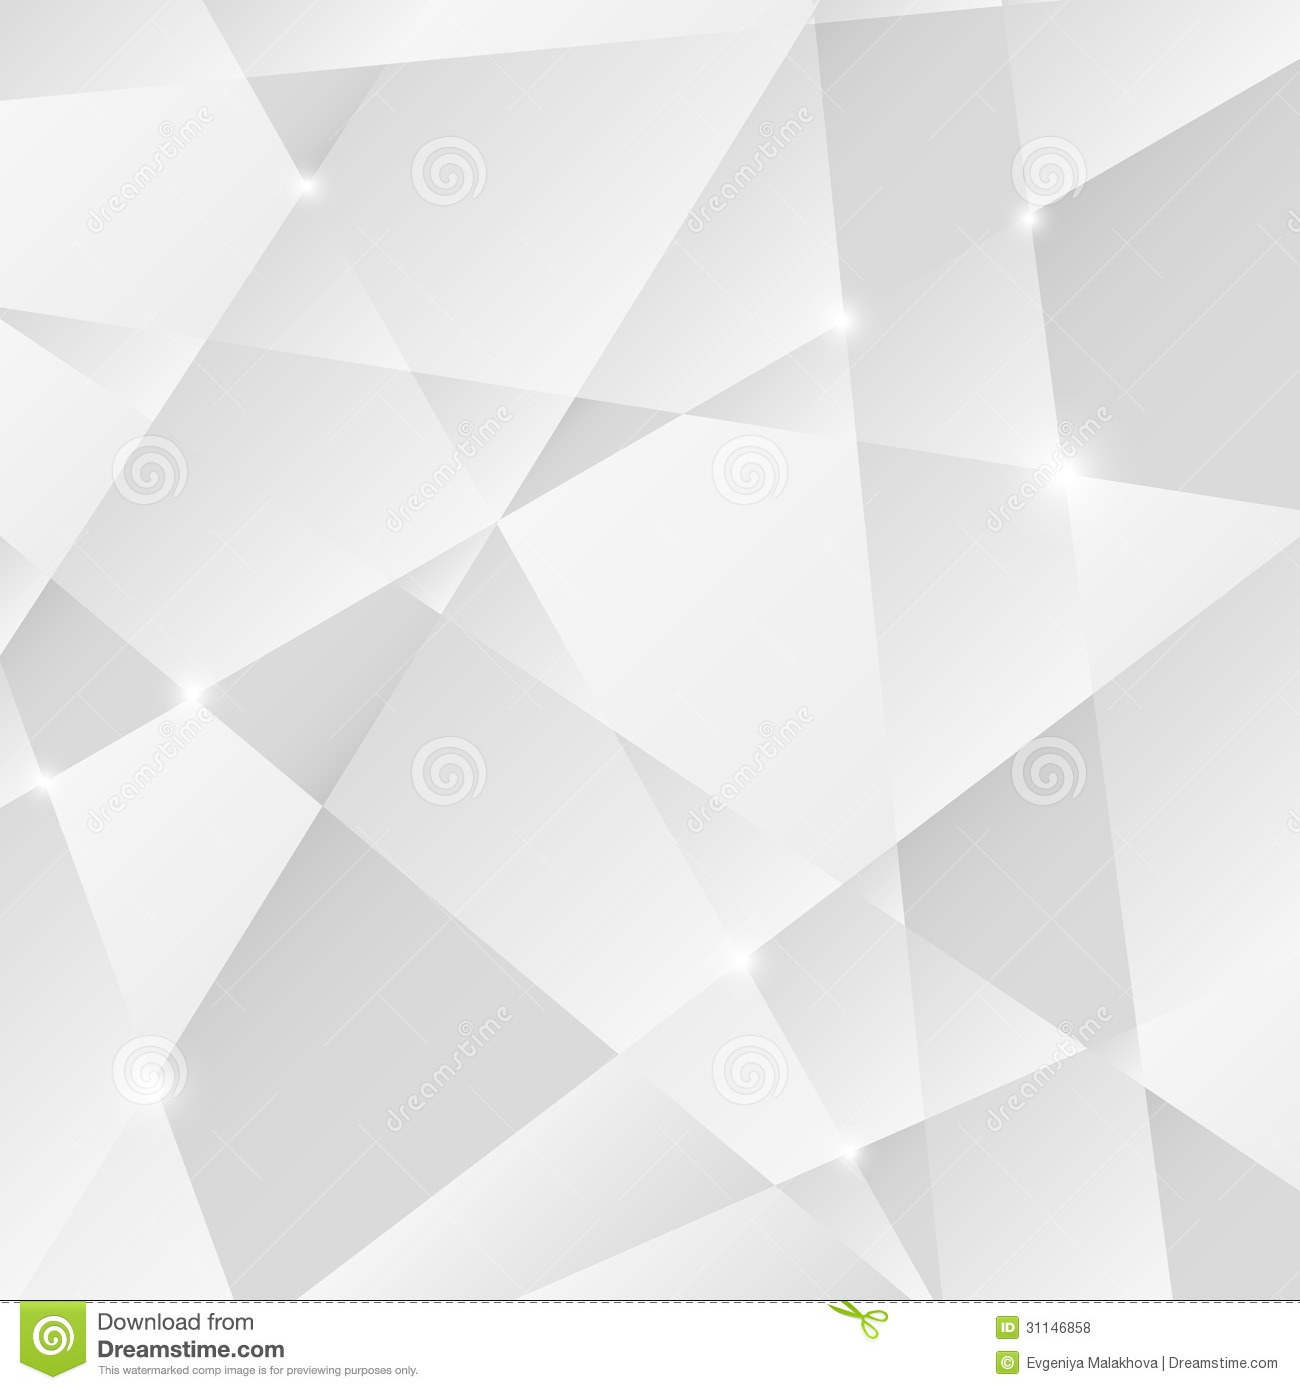 Phil Abrams Wallpapers Triangle Background Triangle background